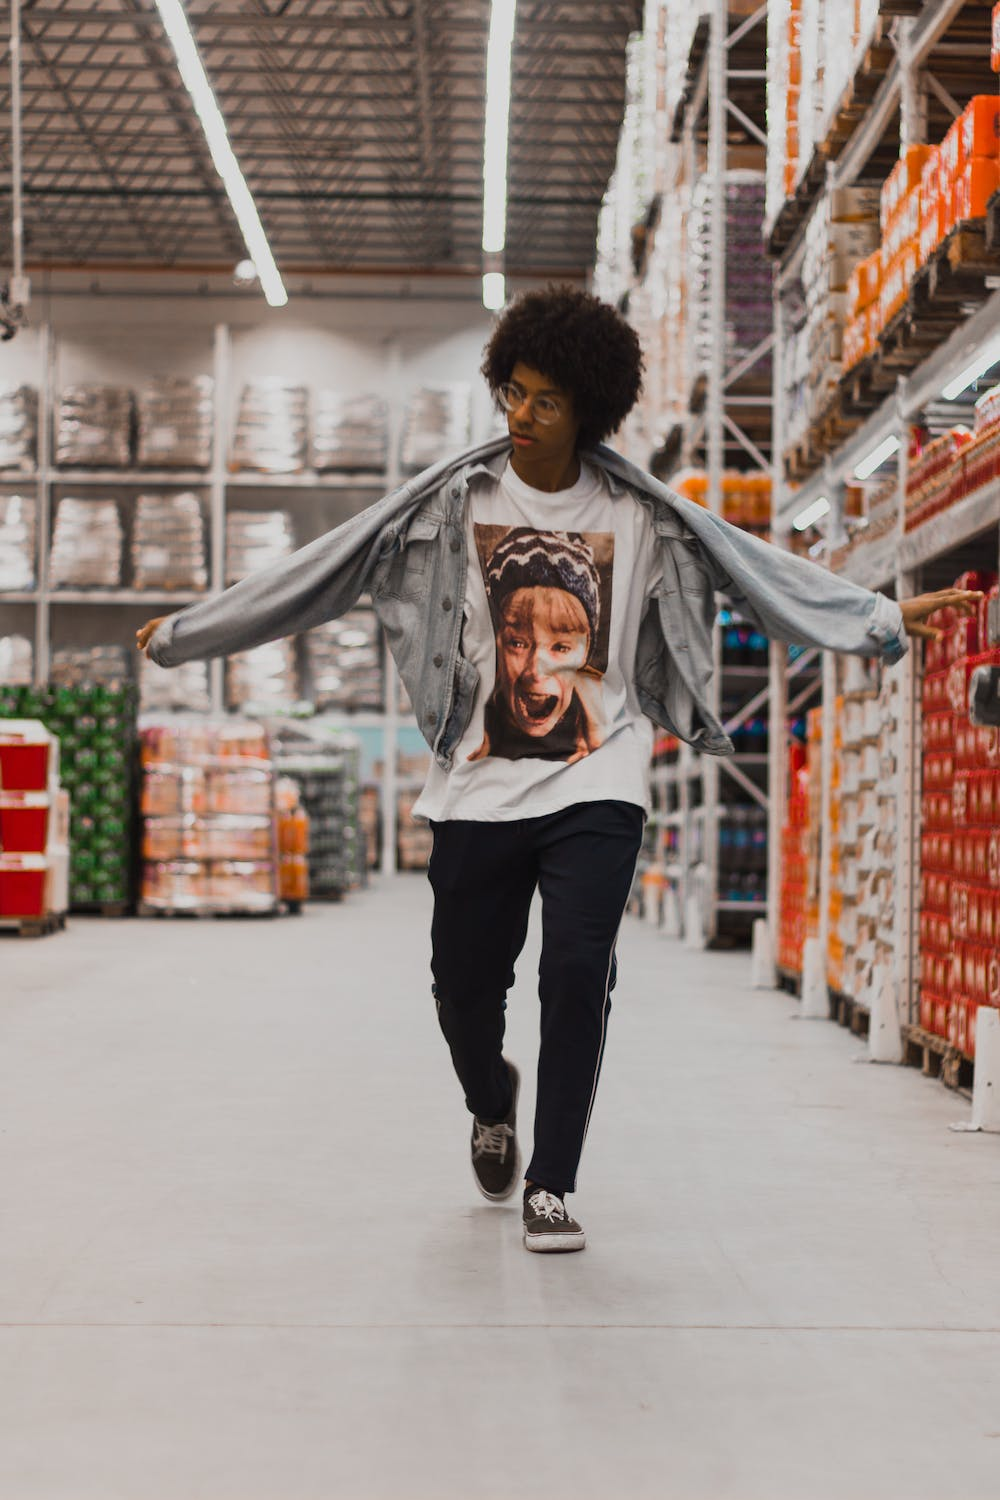 Man walking down the supermarket aisle. | Photo: Pexels